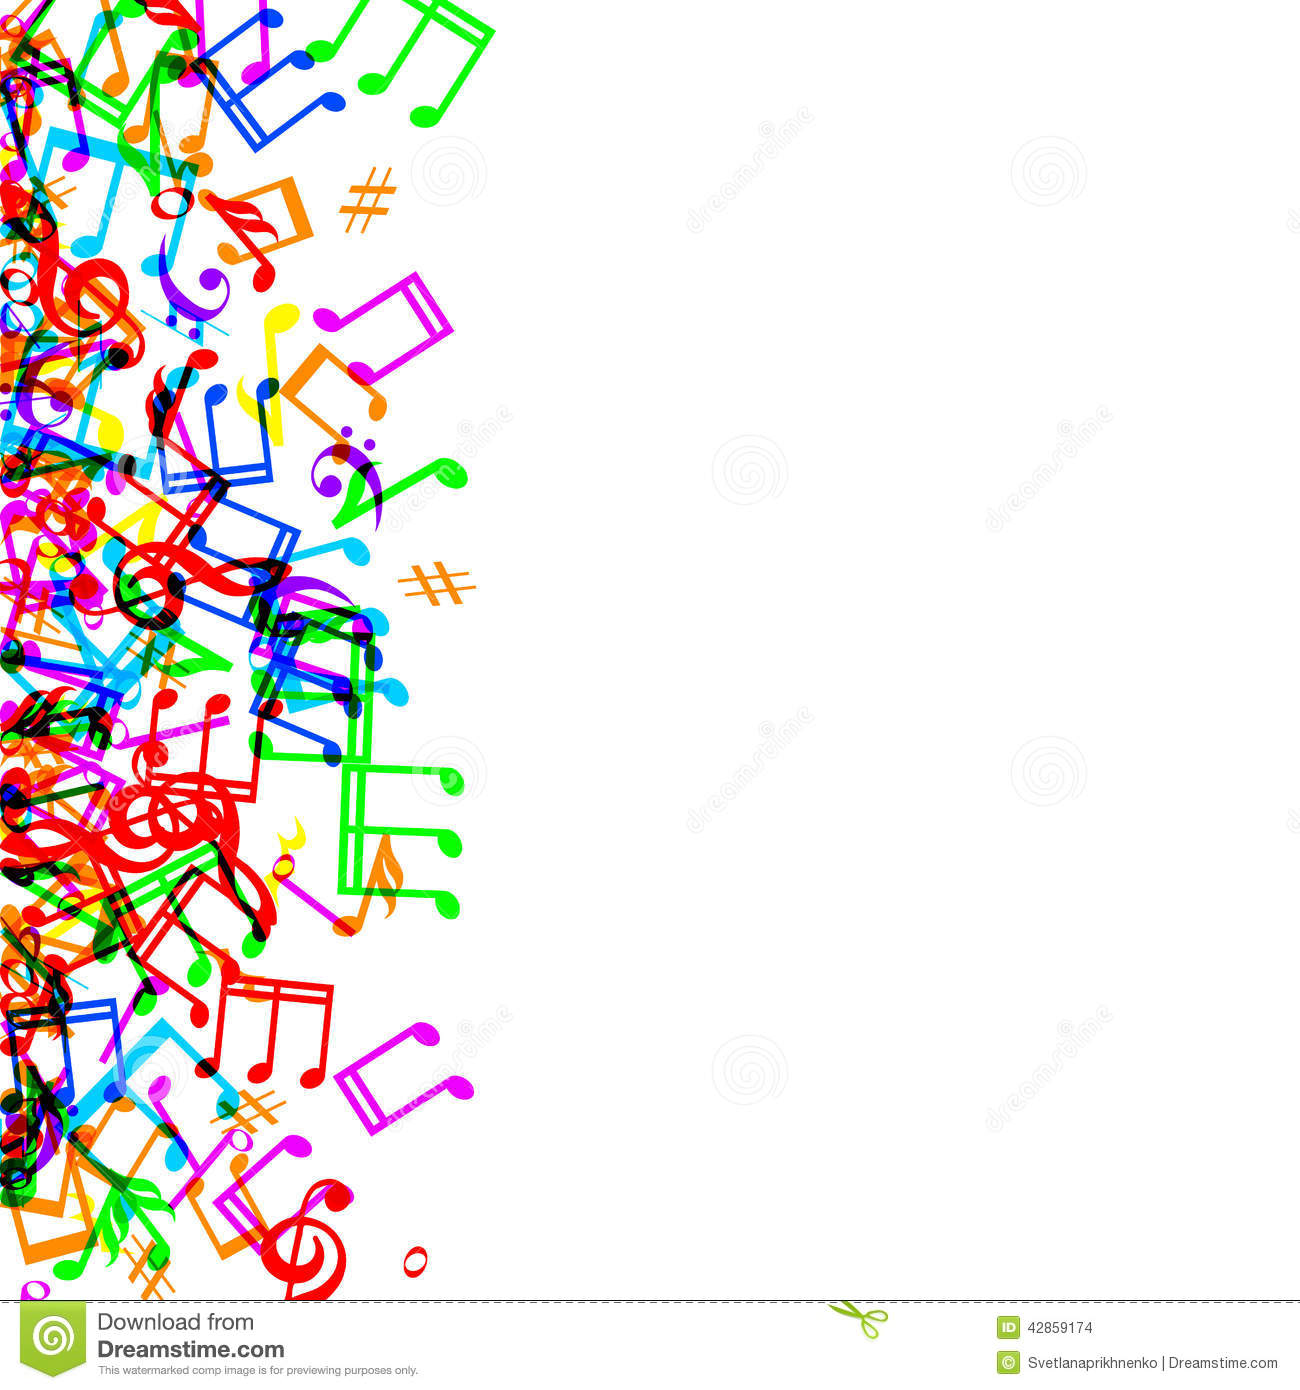 colorful-music-note-bo...